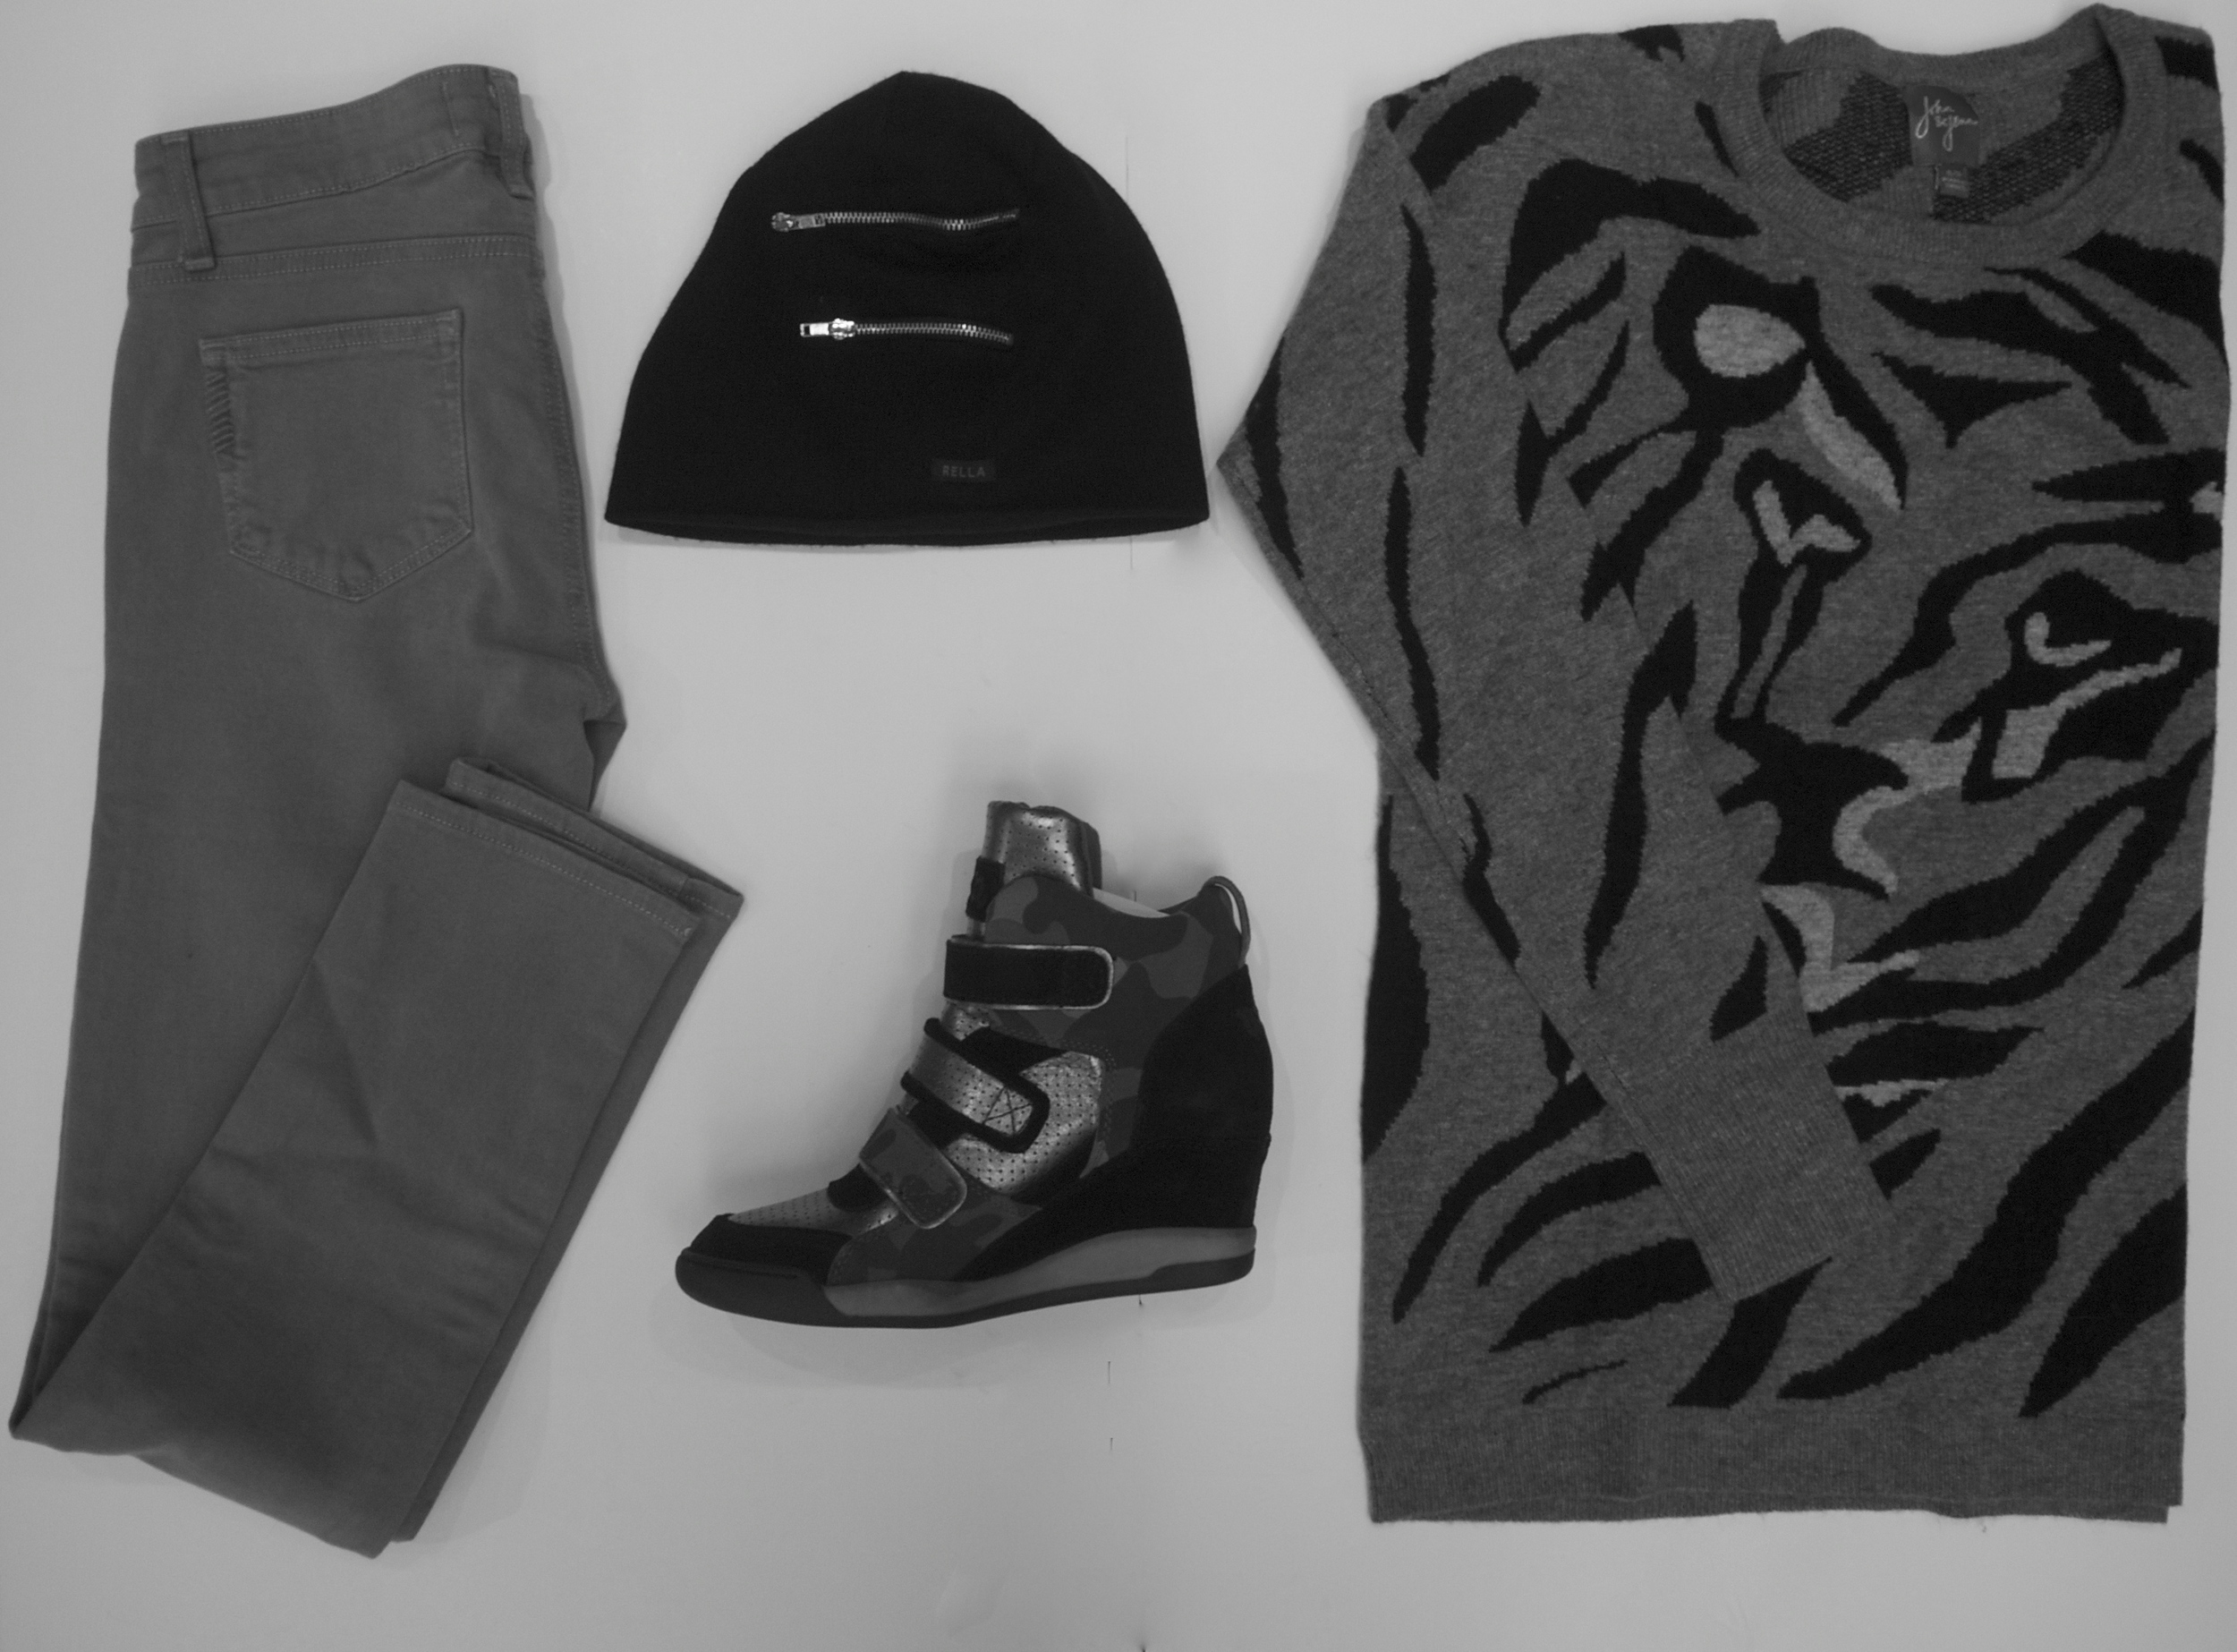 Paige - Skyline Pant $245, Rella - Zipper Touque $48, Ash - Alex Wedge Sneaker $240, John and Jenn - Angelica Tiger Face Sweater $149